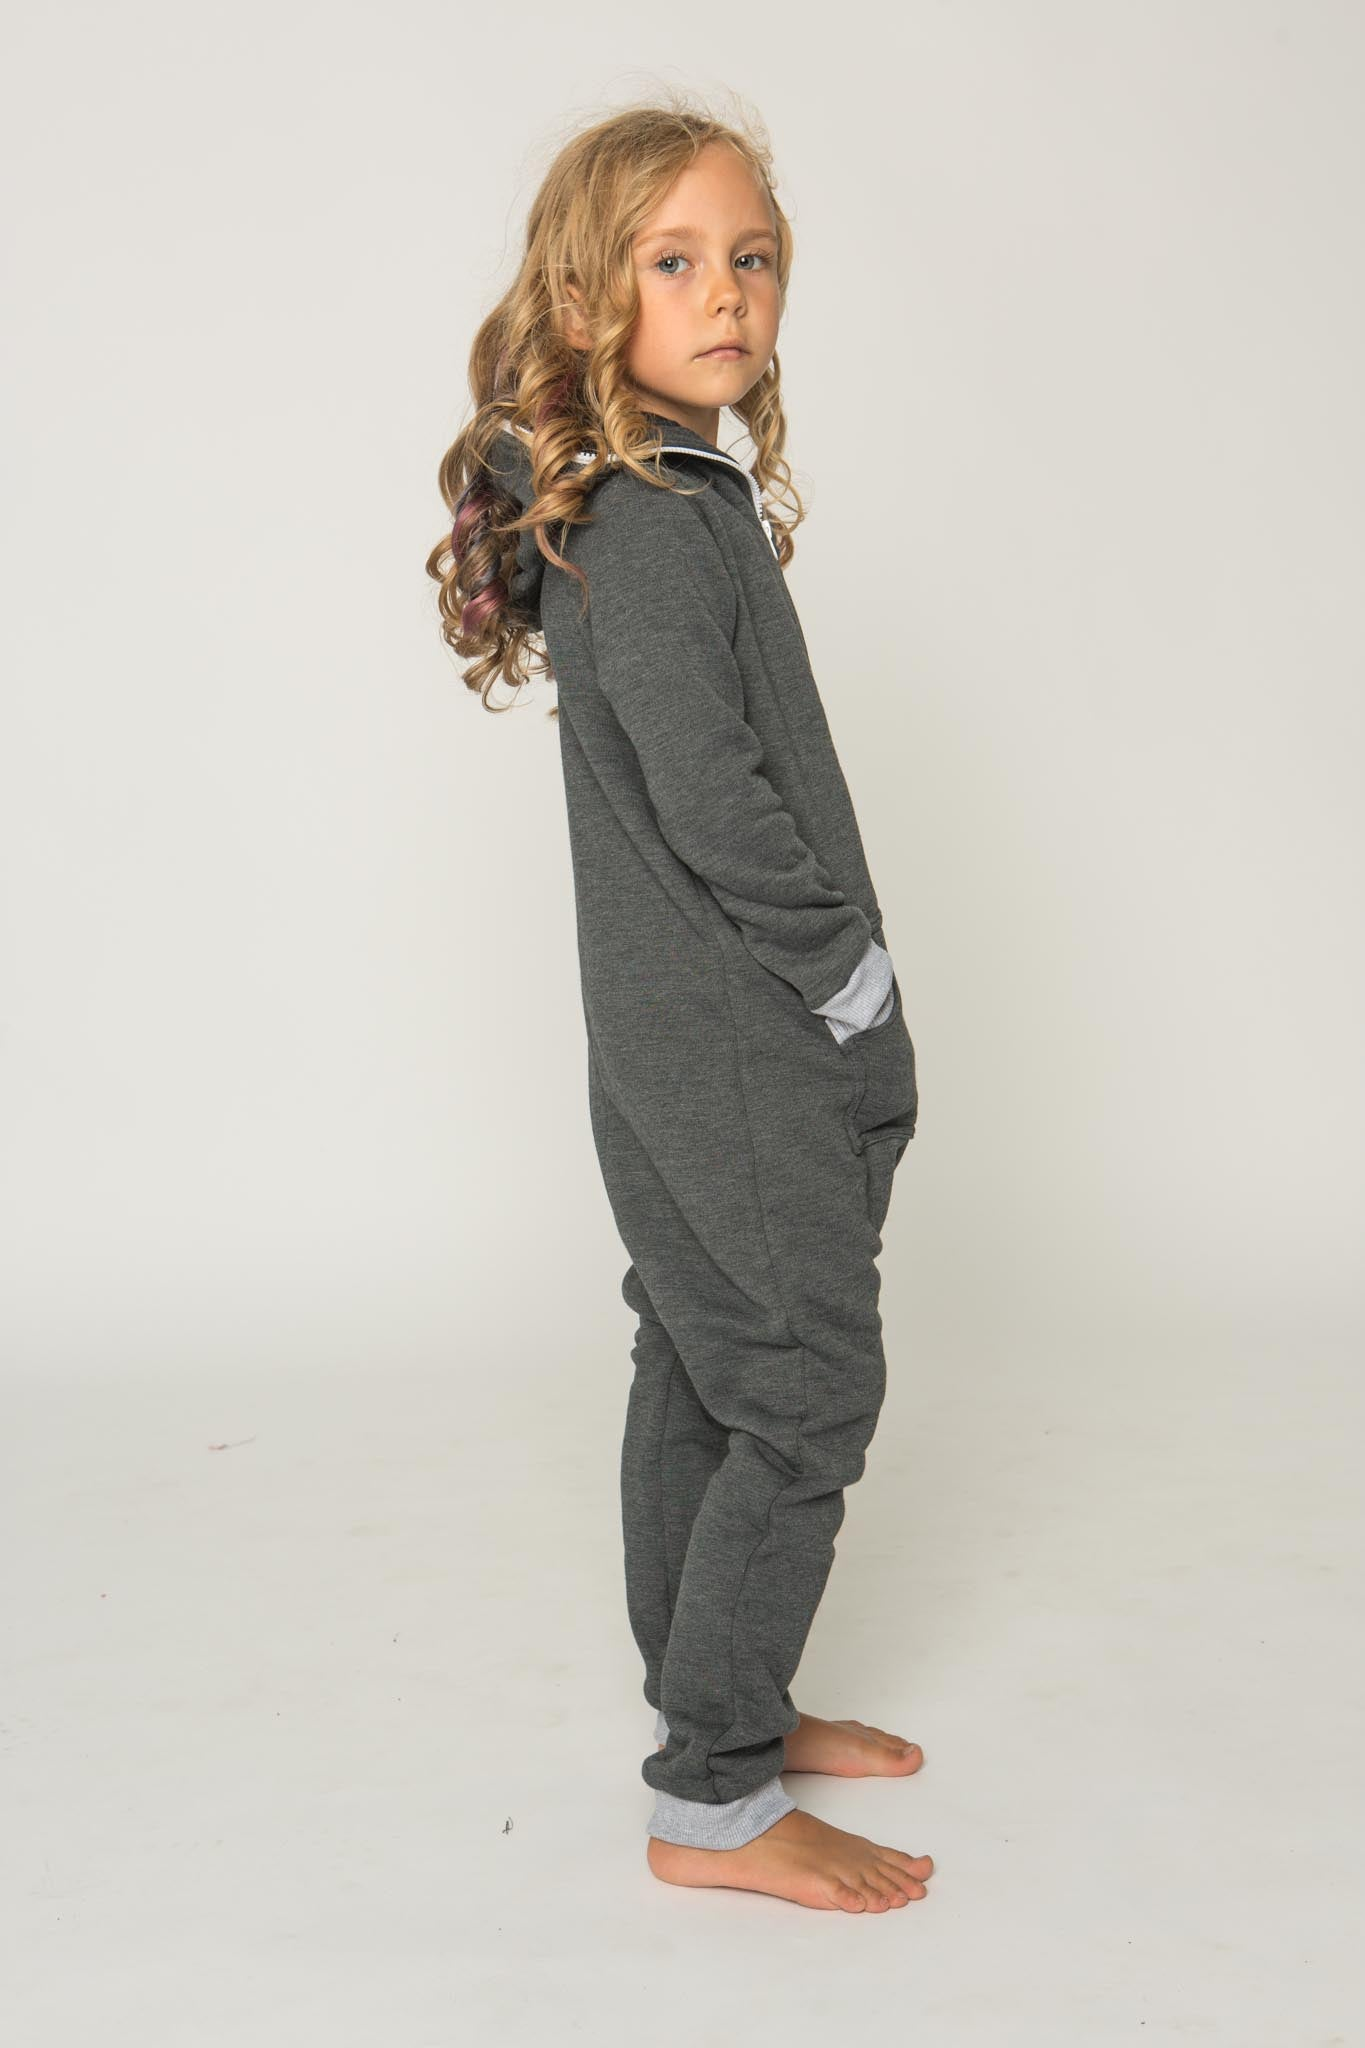 Sofa Killer dark grey unisex kids onesie